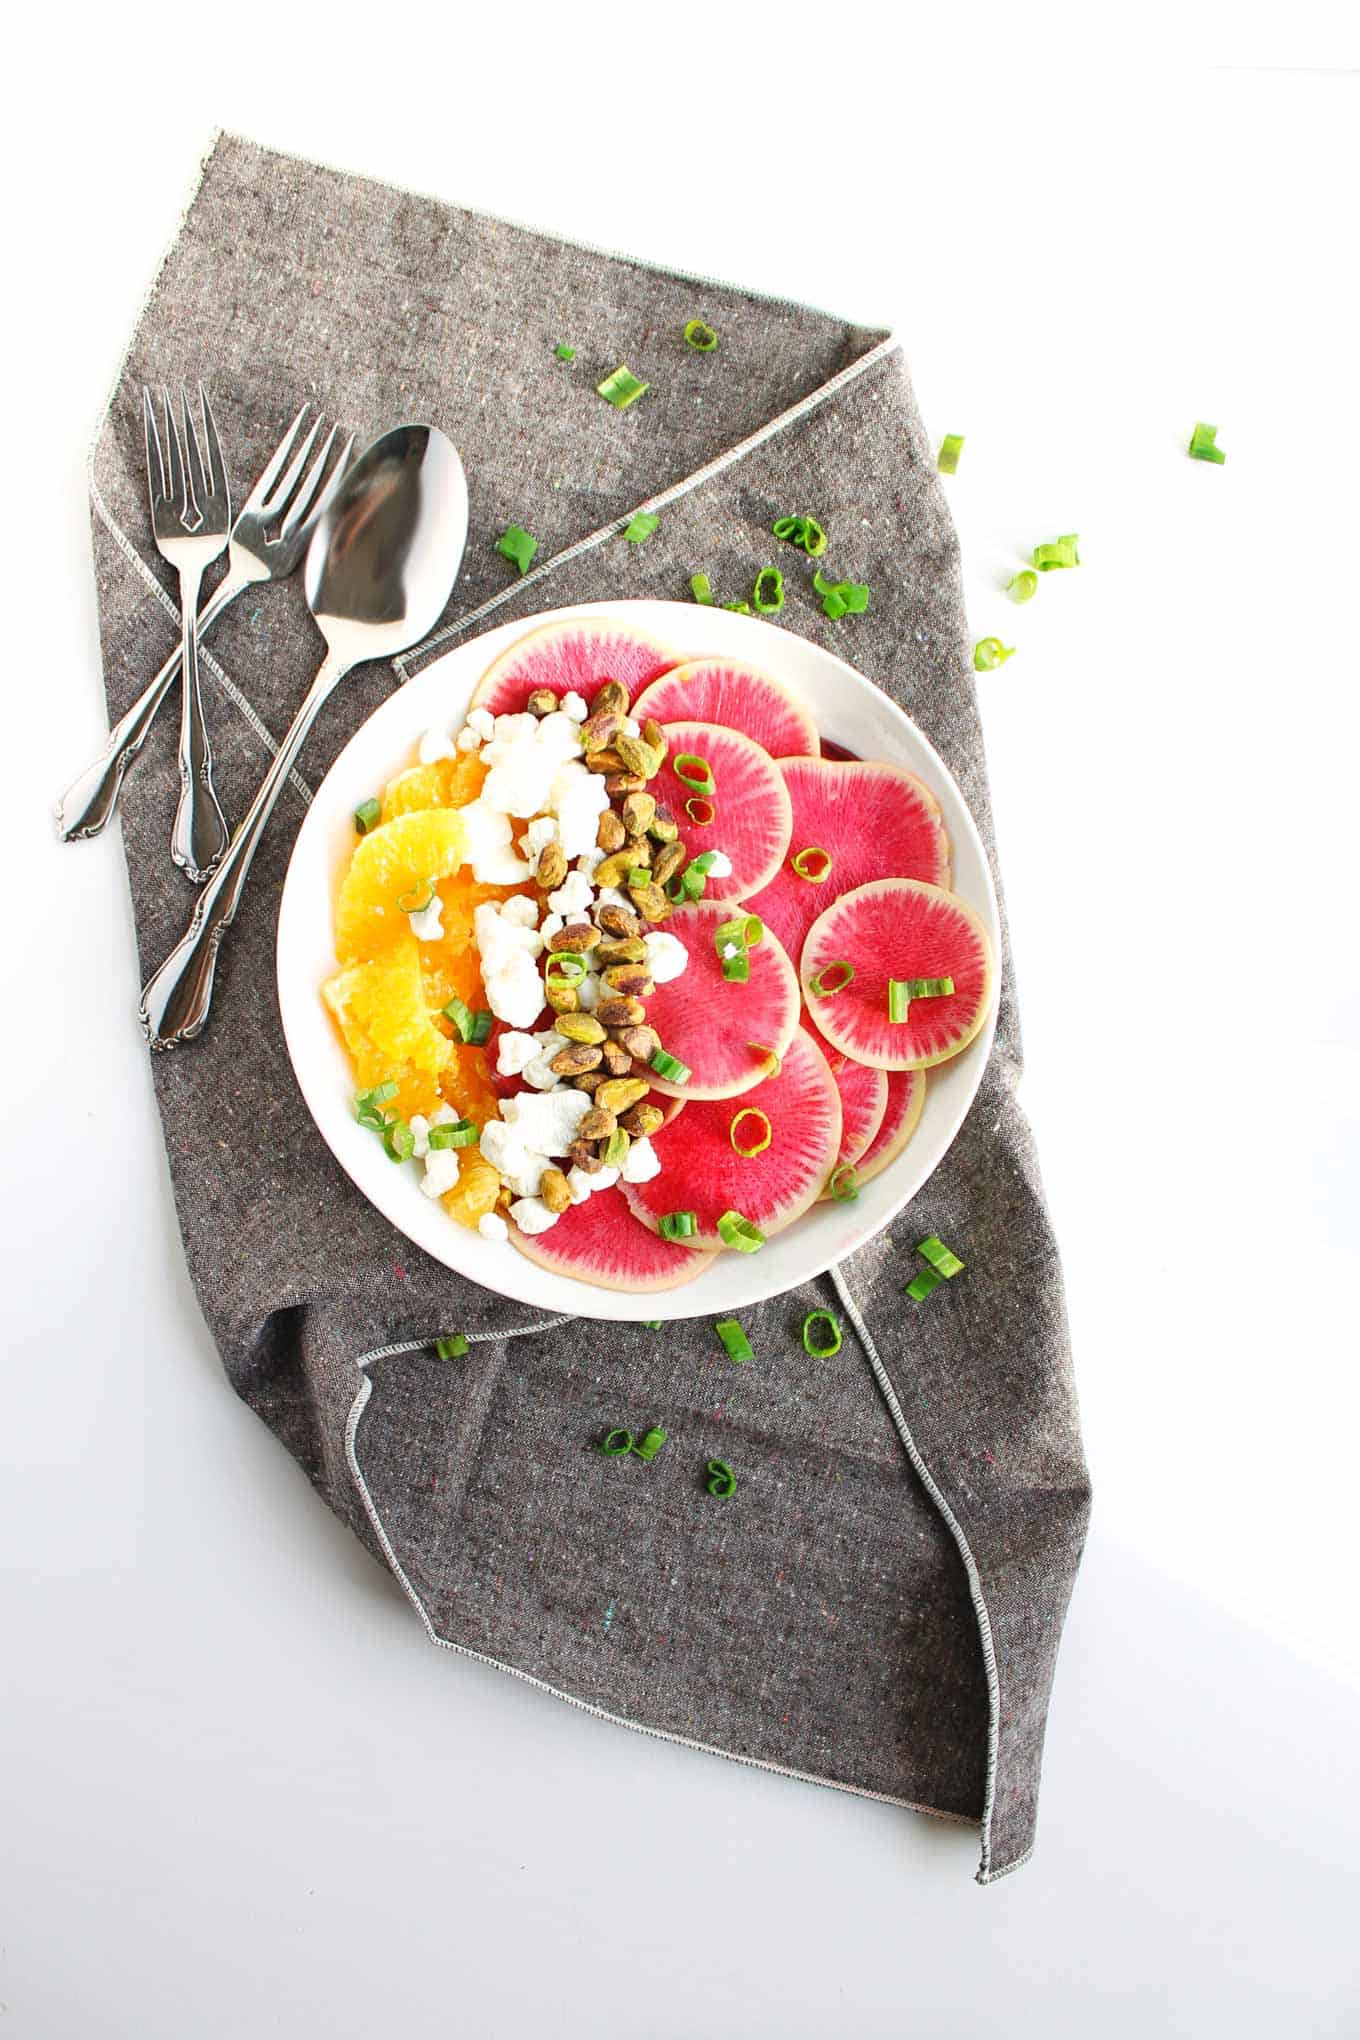 watermelon-radish-orange-salad-with-goat-cheese-and-pistachios-web3